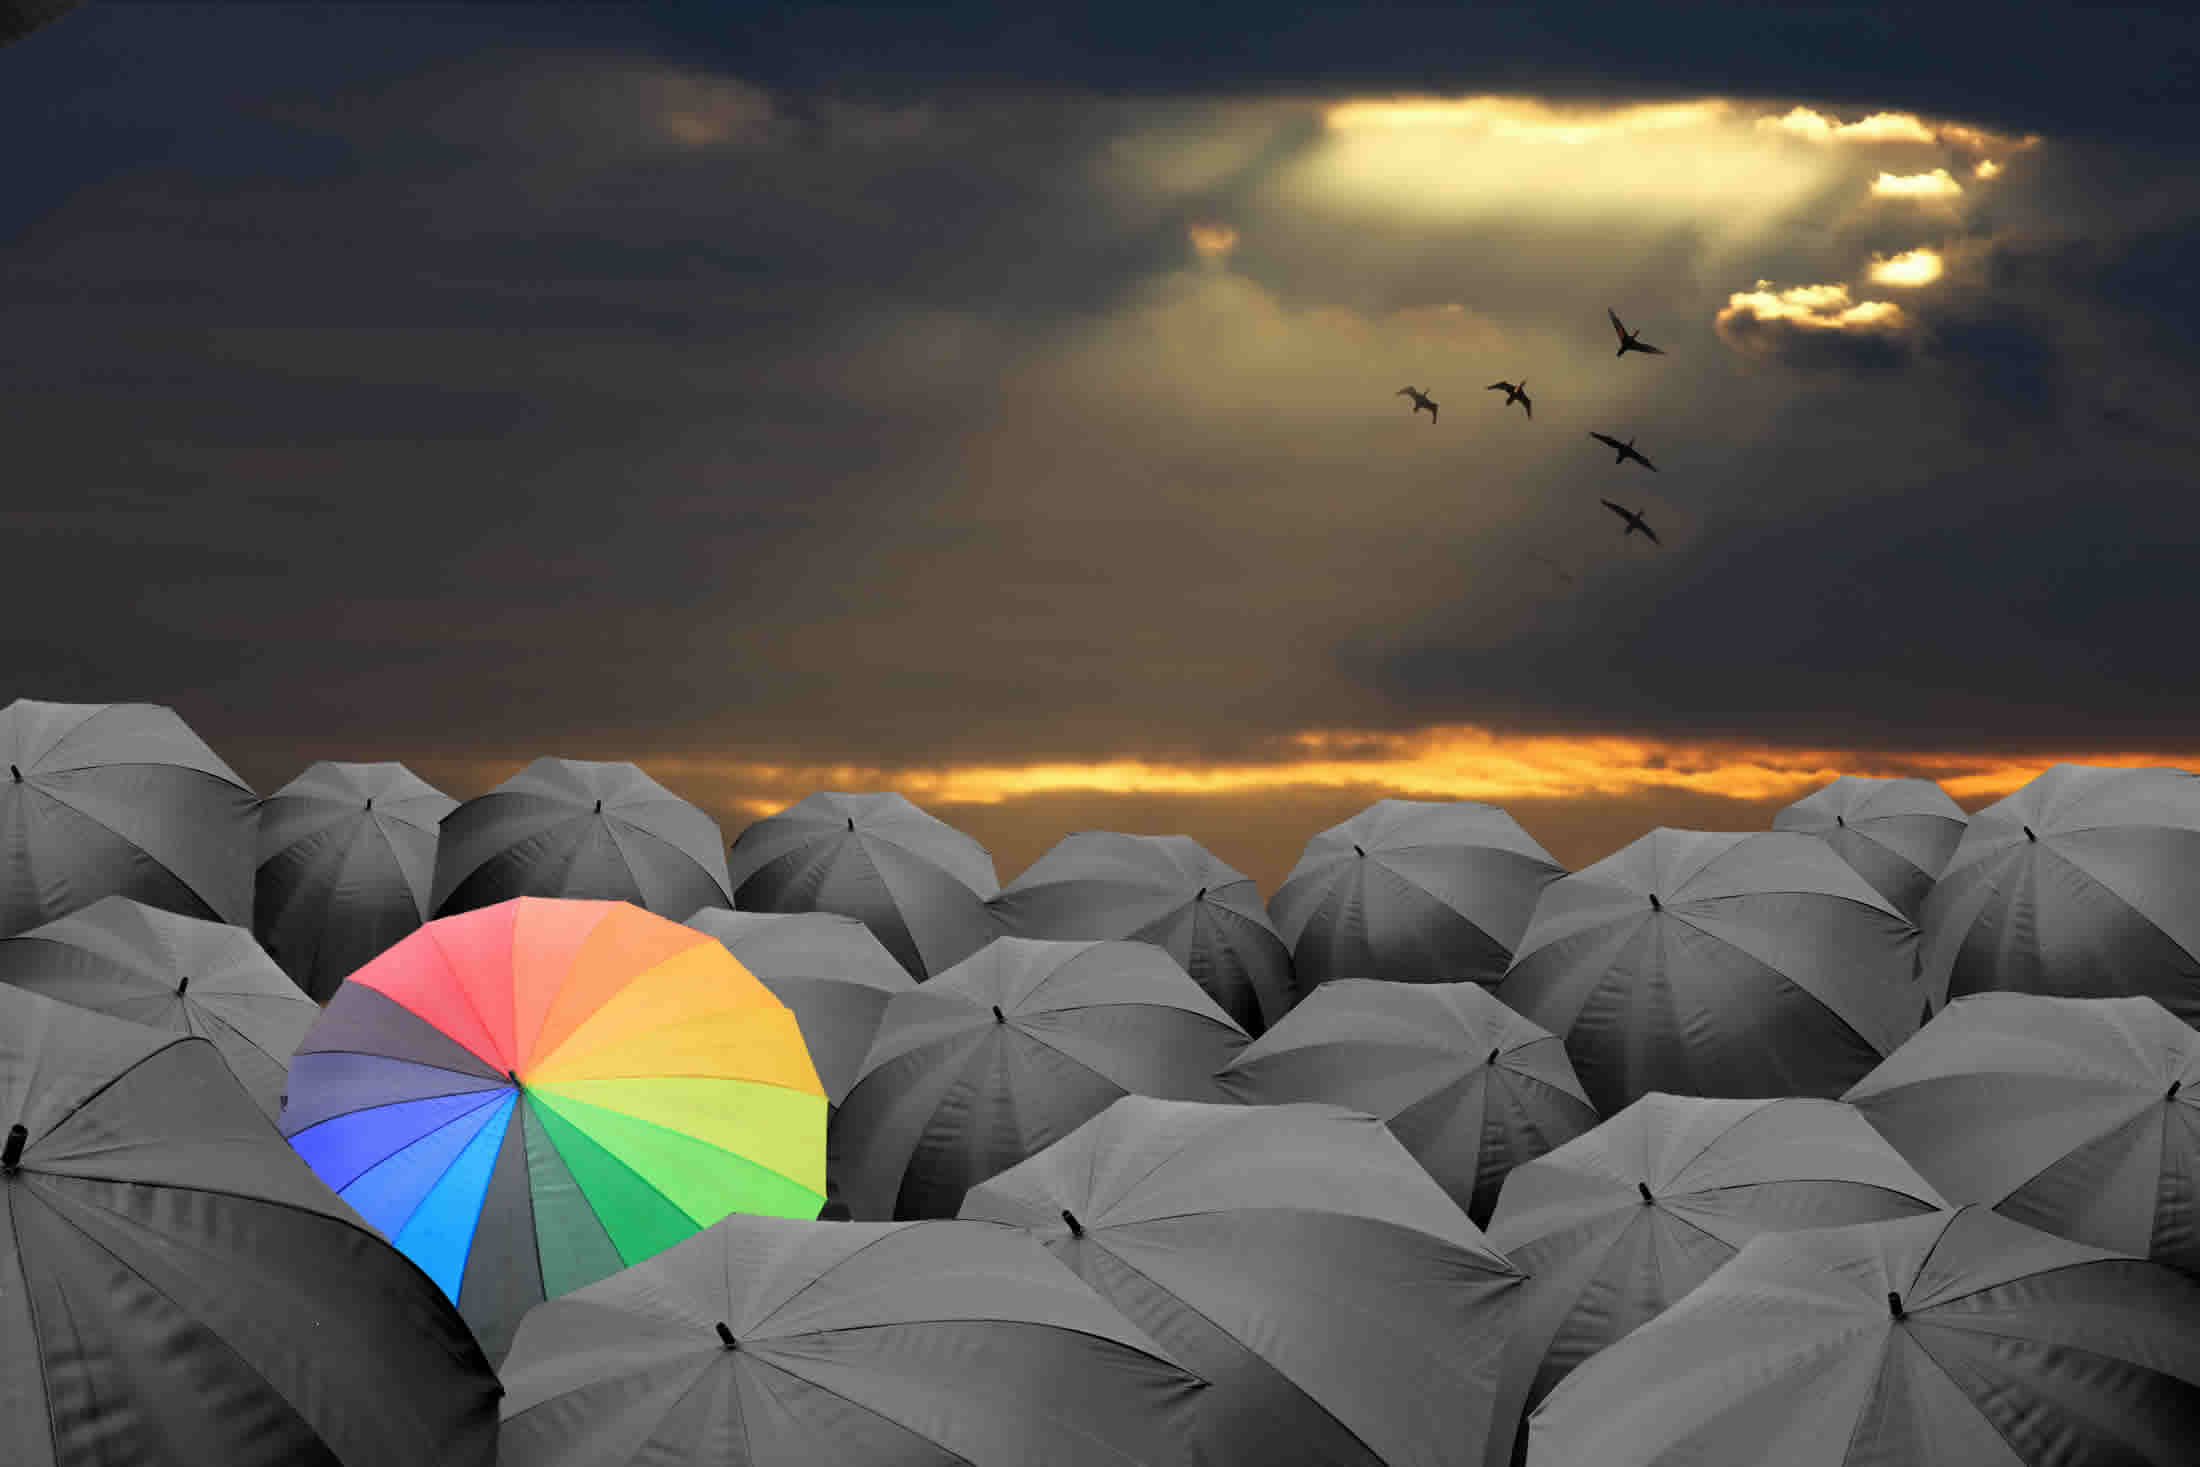 colourful umbrella amongst black umbrellas